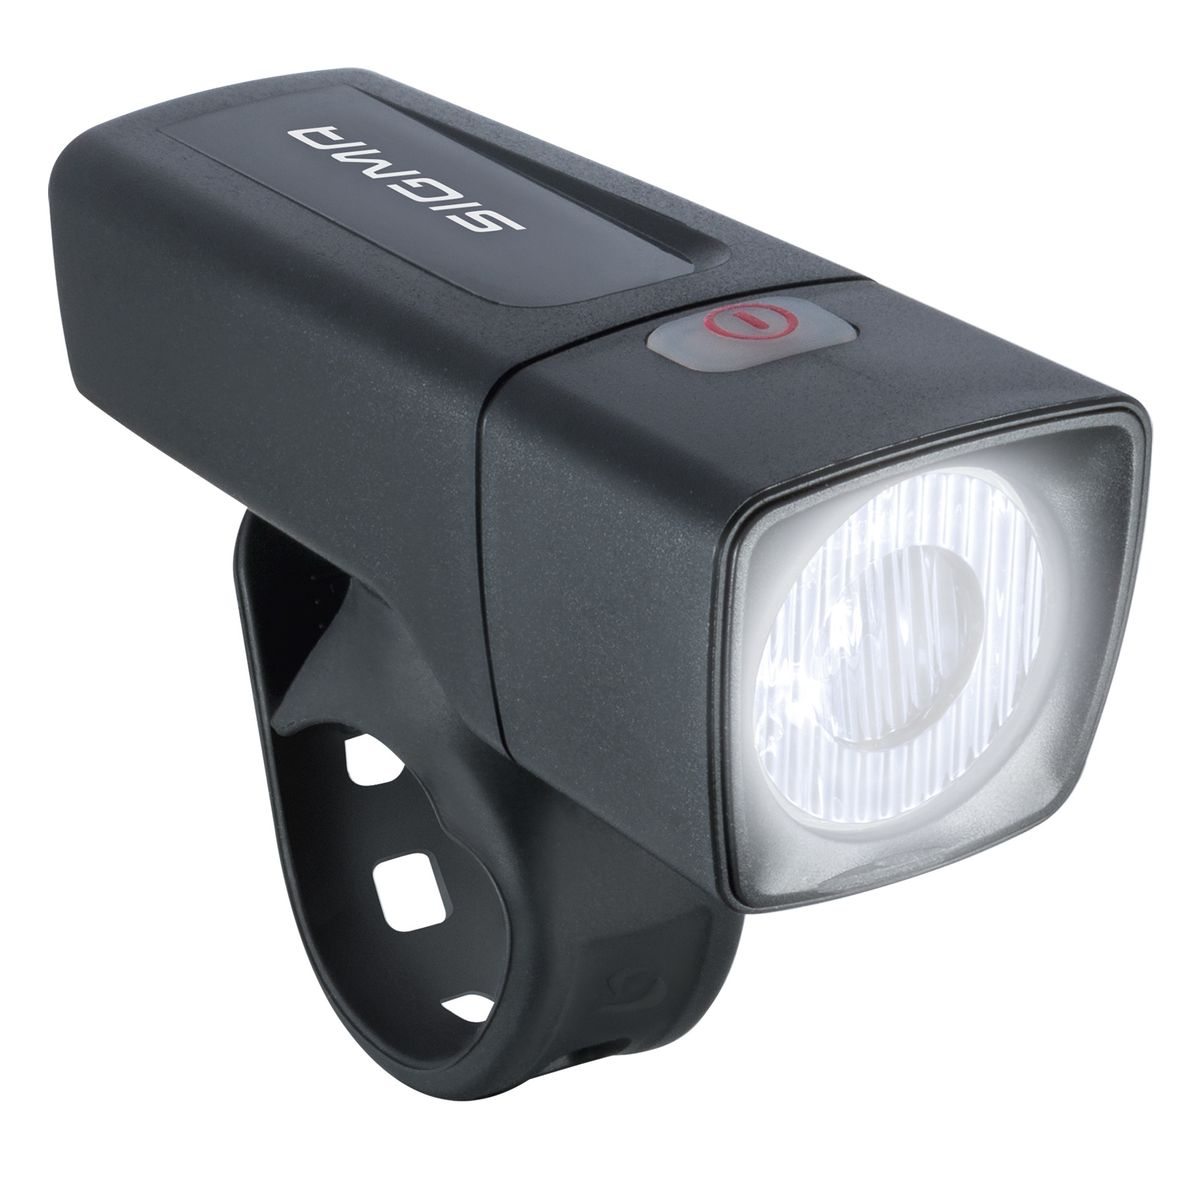 Aura 25 LED front light